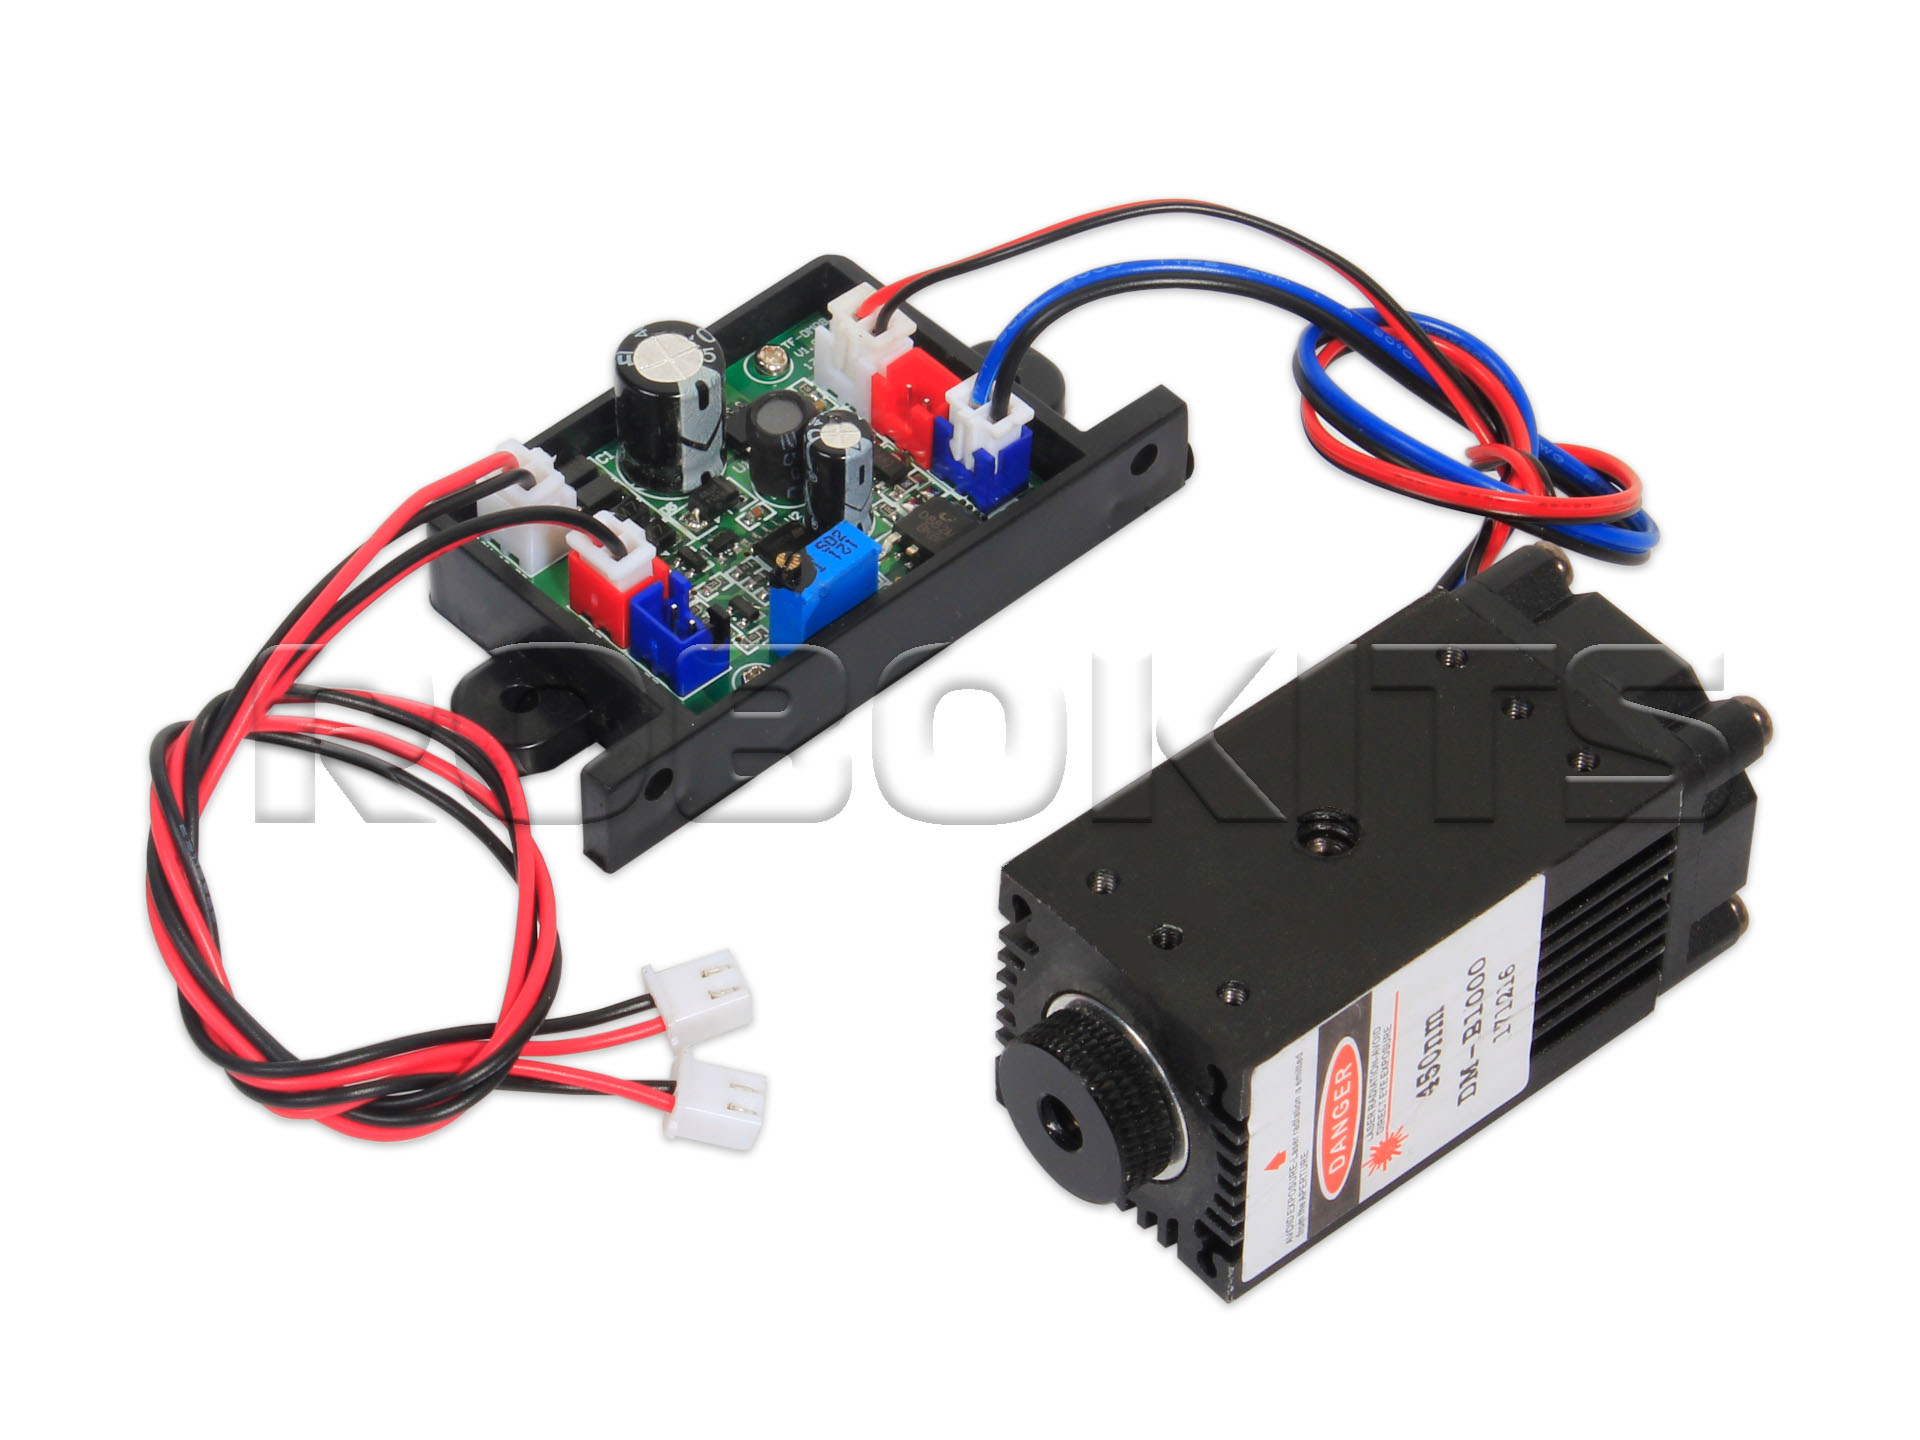 High Power Laser 2 5w 445nm For Engraving And Cutting Rki